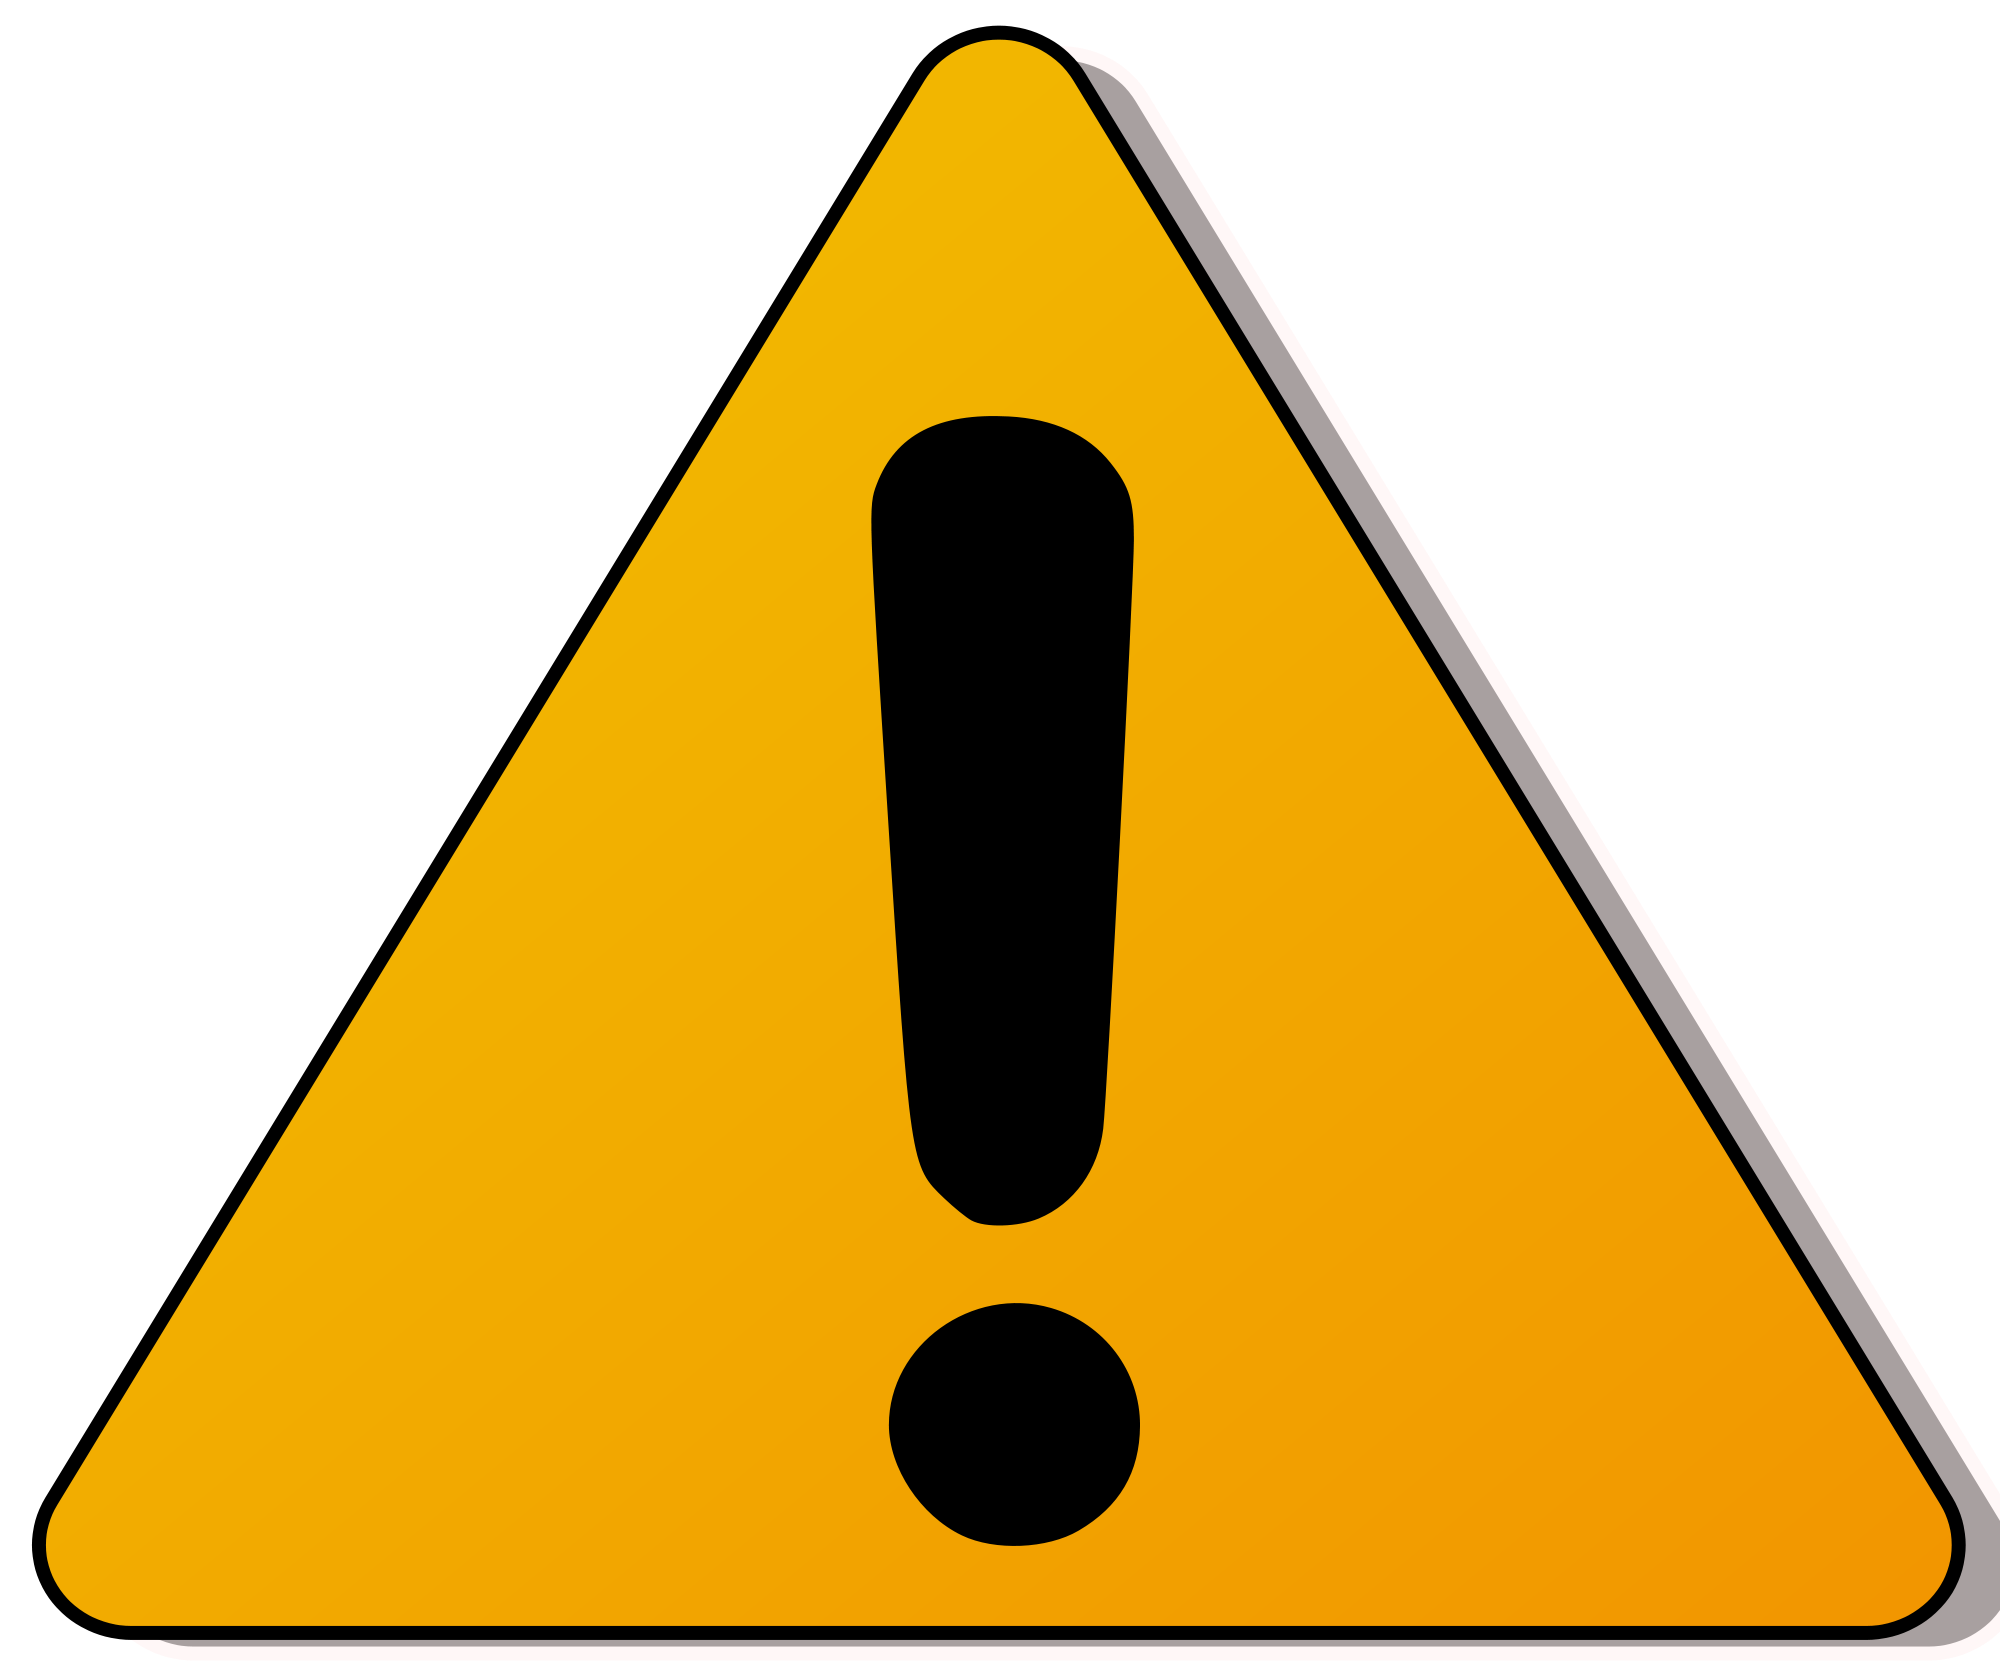 Caution sign png. File used on roads